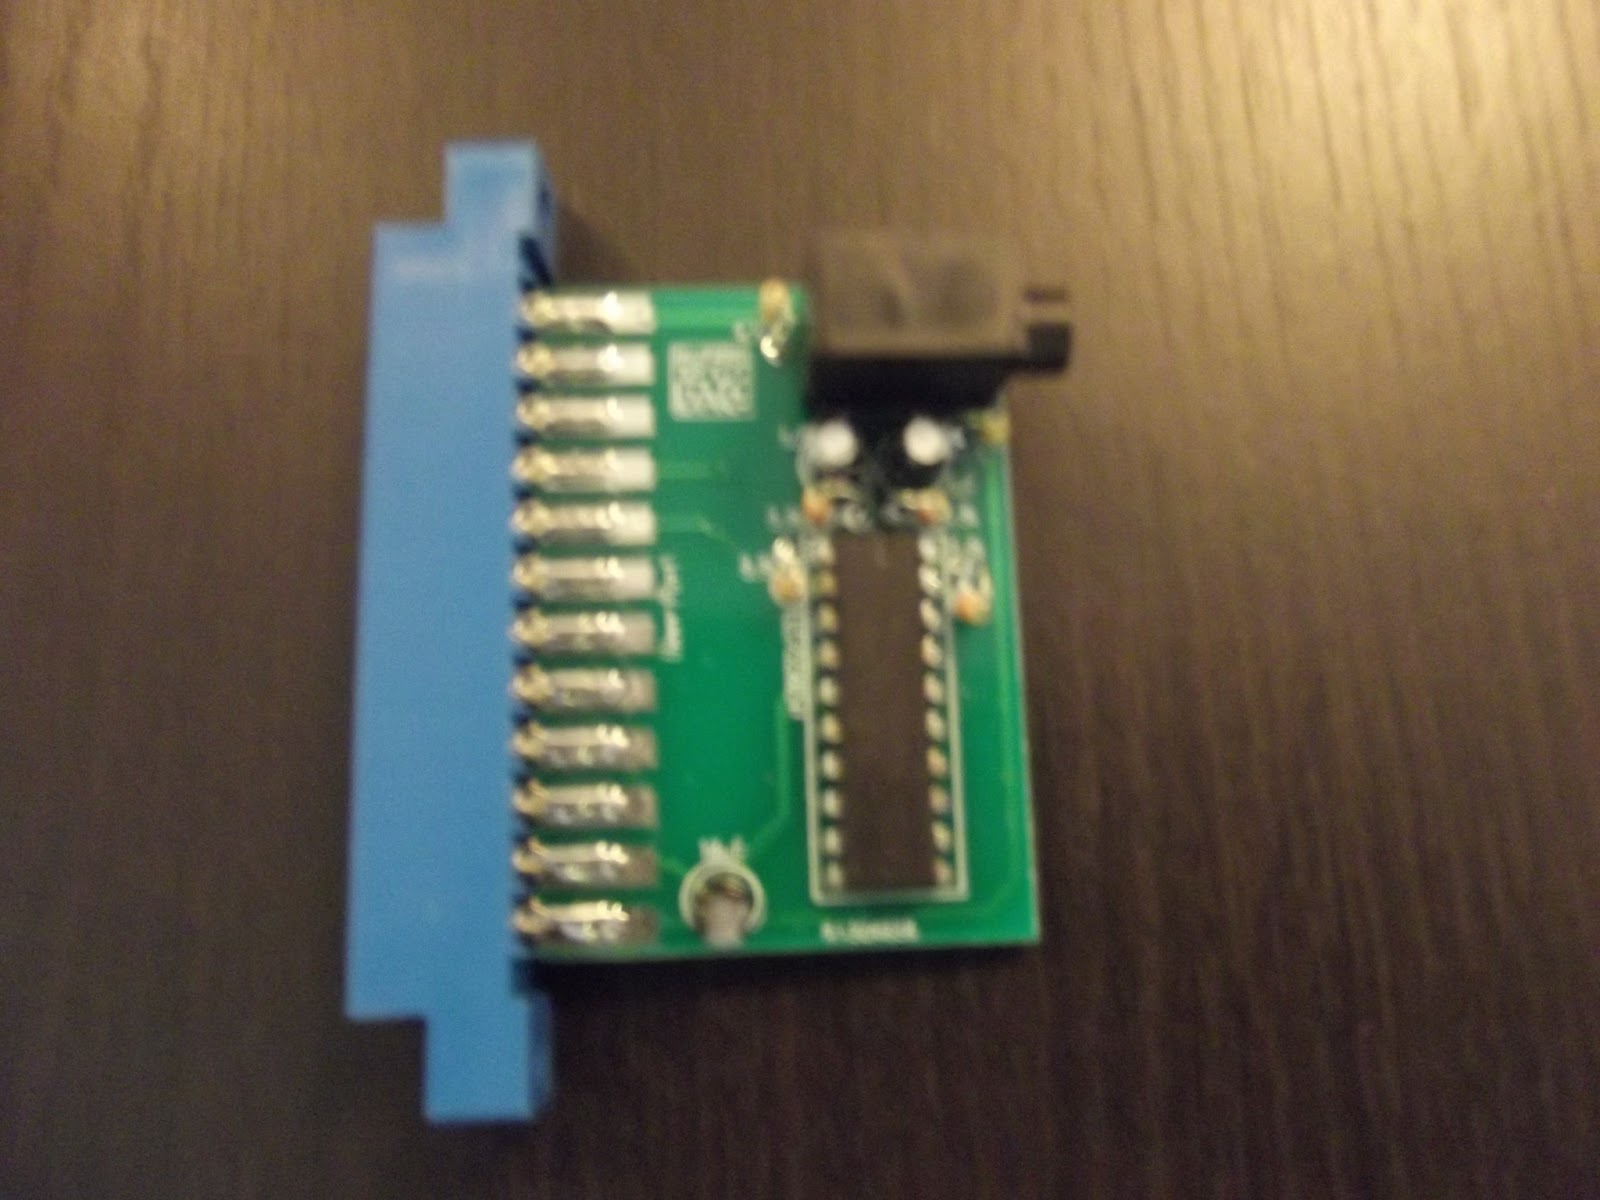 Ready - DigiMax for the Commodore 64 by Digital Audio